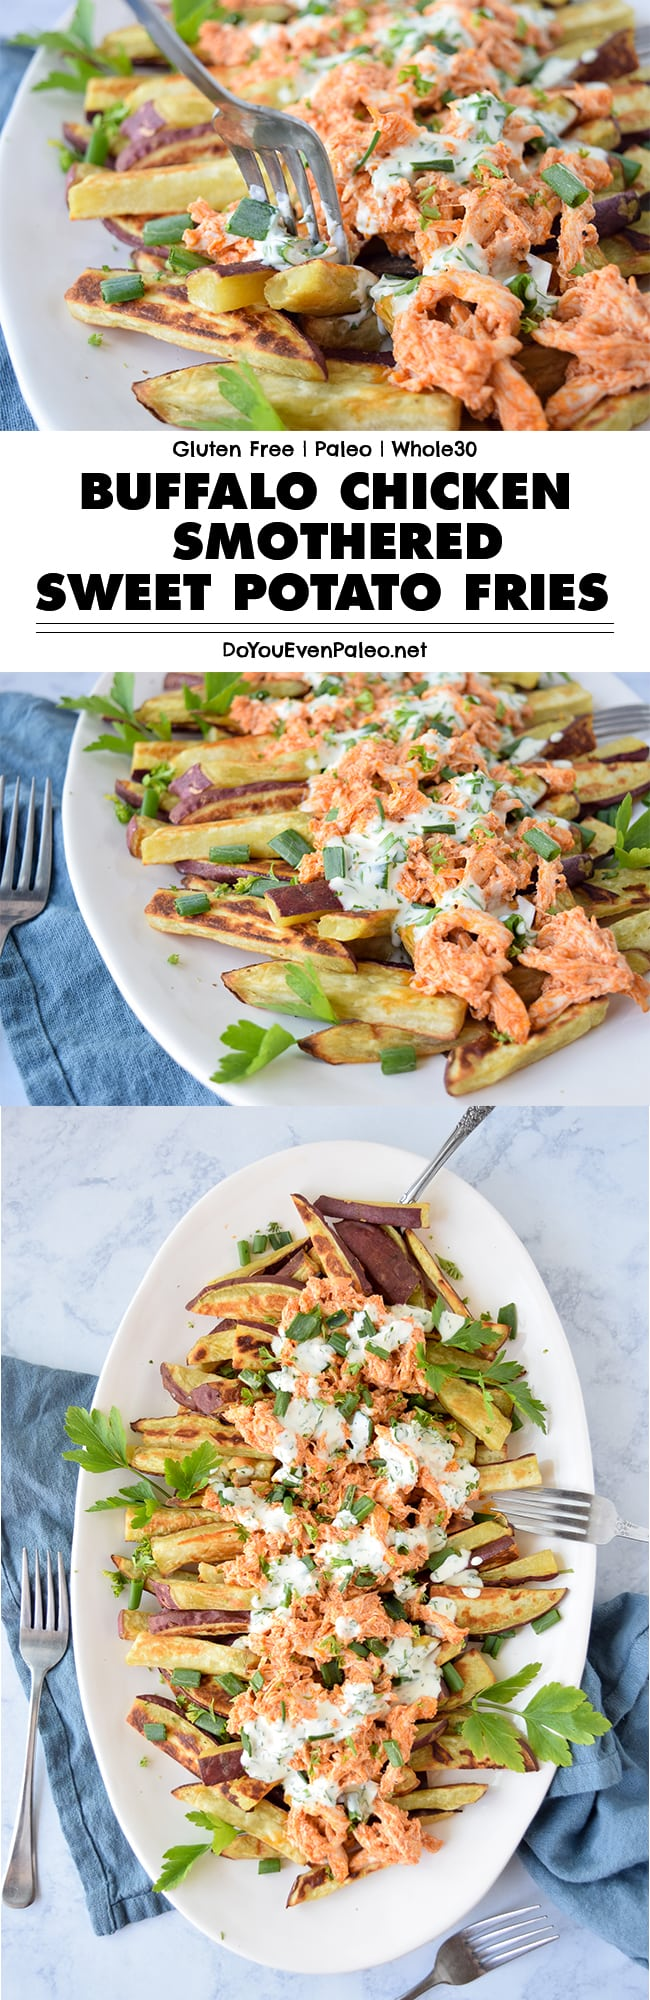 Buffalo Chicken Smothered Sweet Potato Fries Recipe Pin | DoYouEvenPaleo.net